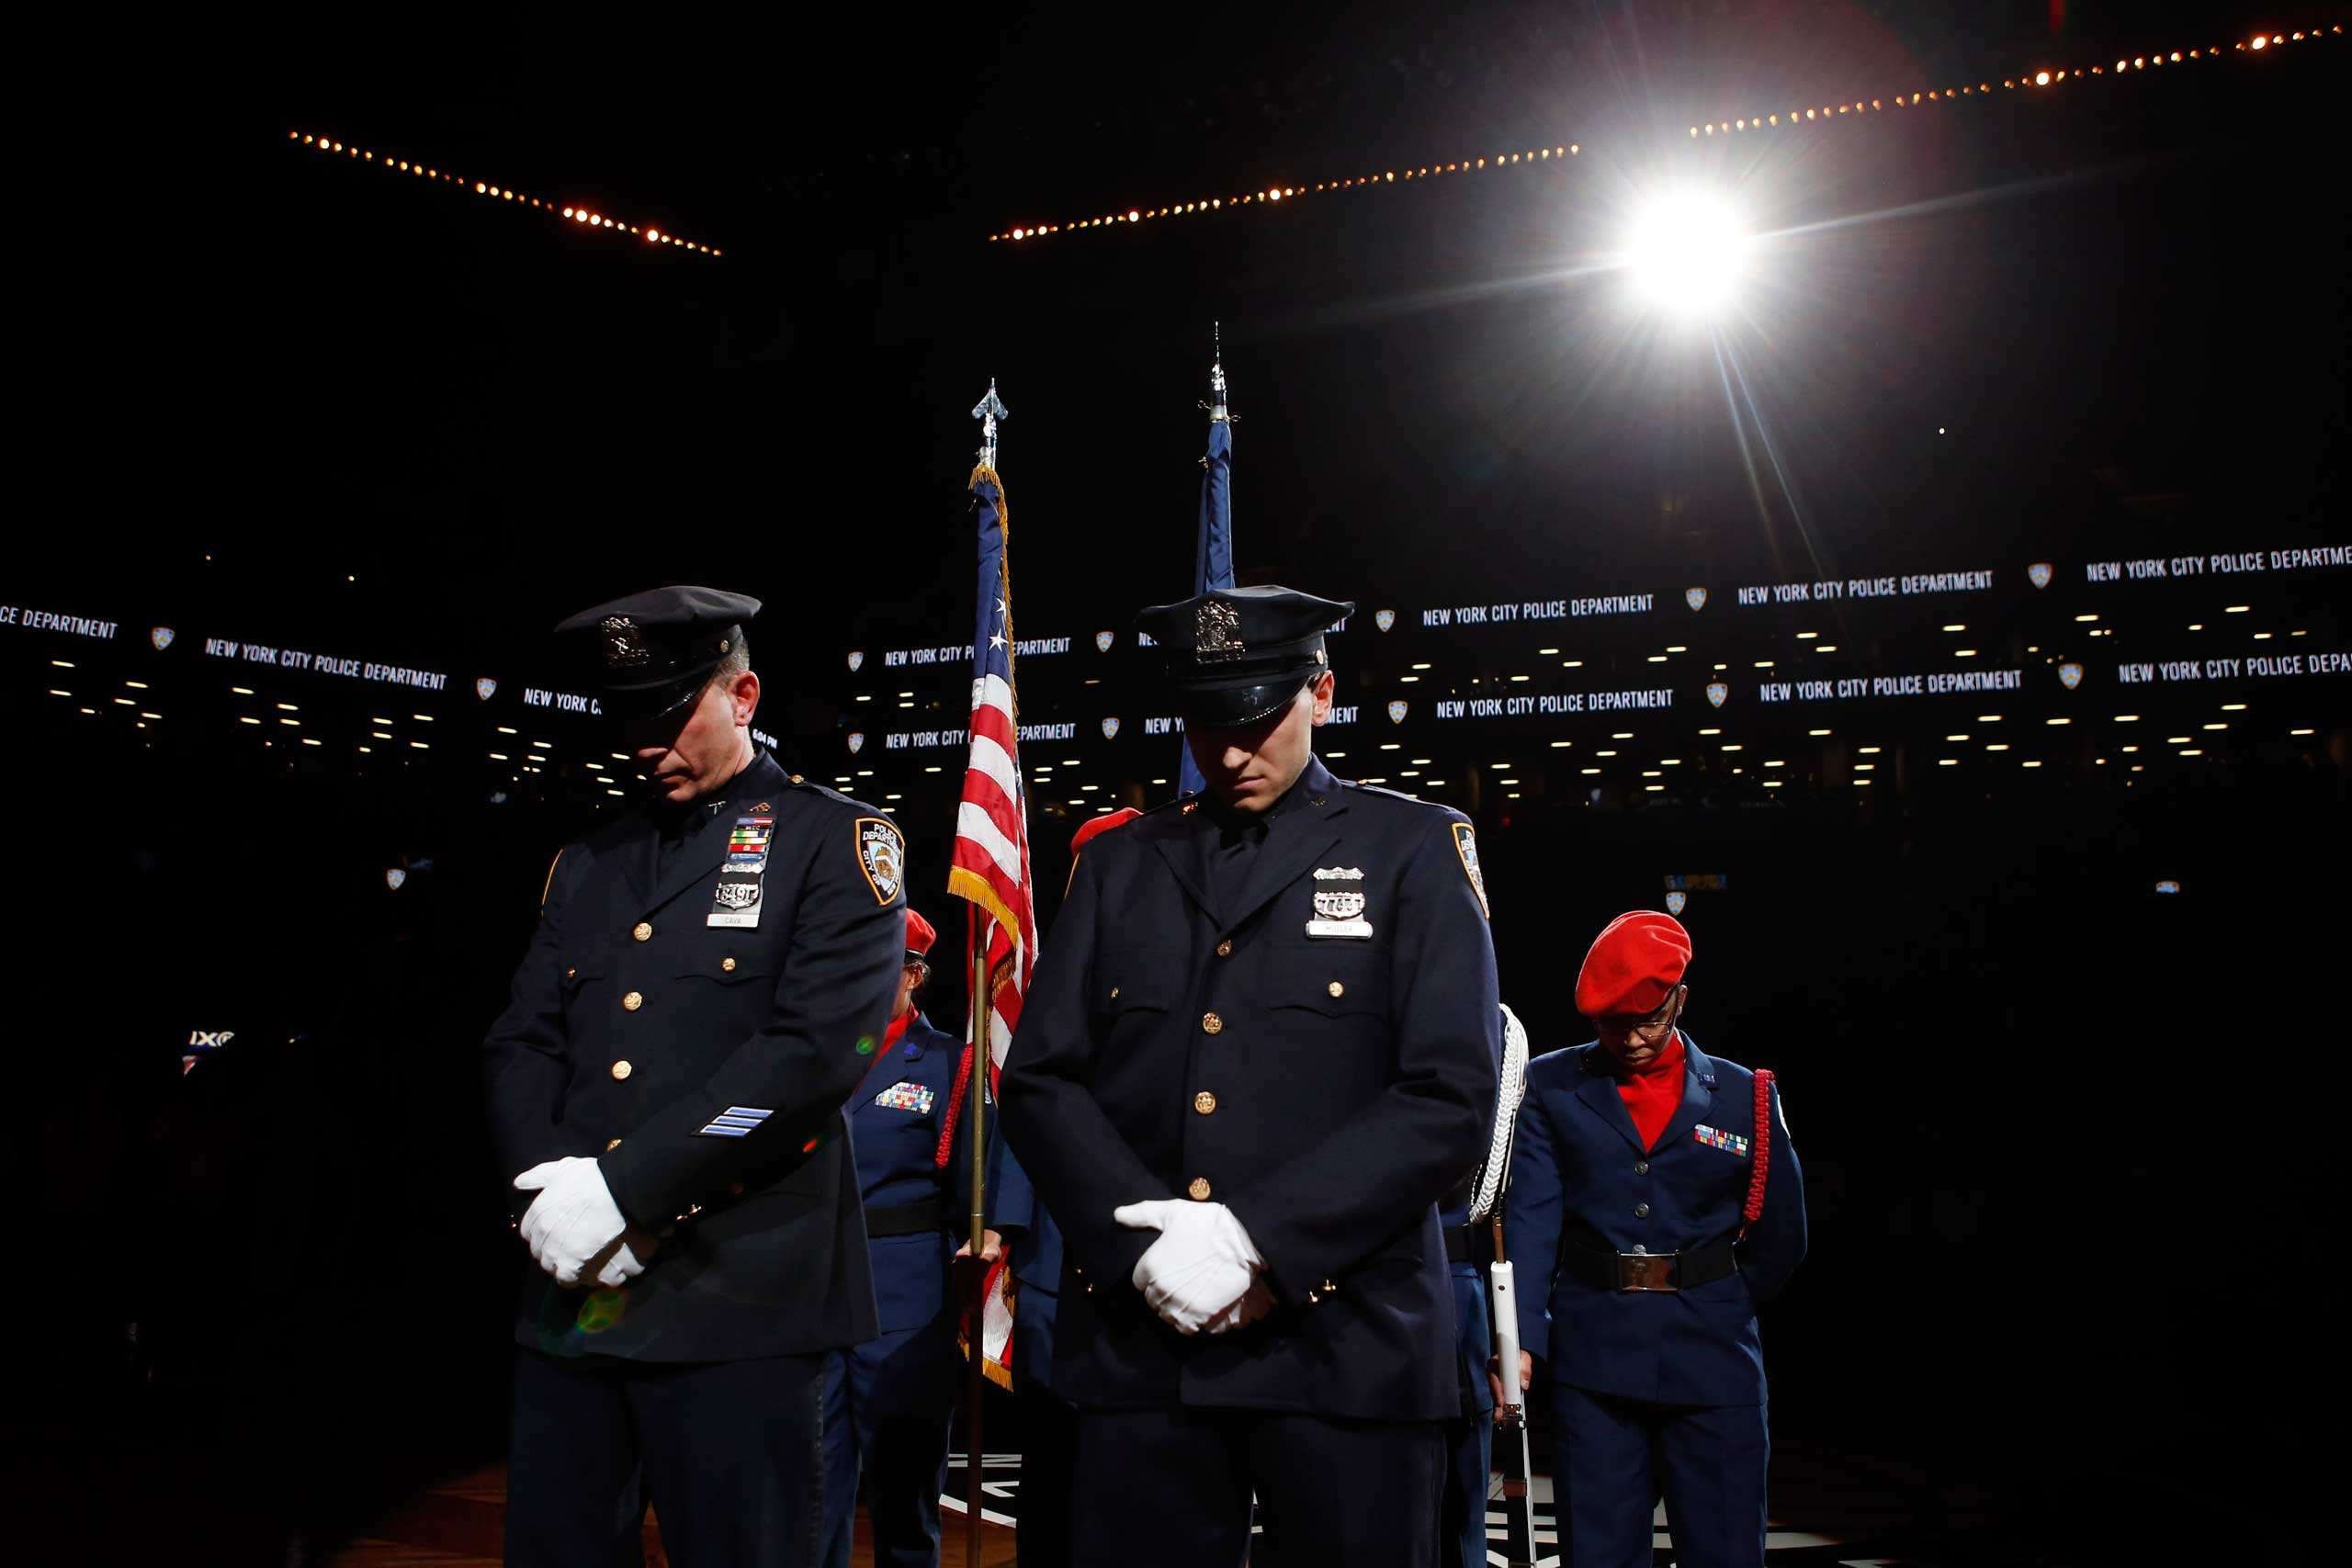 New York Police Department officers Mark Cava, left, and Jason Muller participate in a moment of silence for two slain NYPD officers before an NBA basketball game between the Brooklyn Nets and the Detroit Pistons in New York City on Dec. 21, 2014.